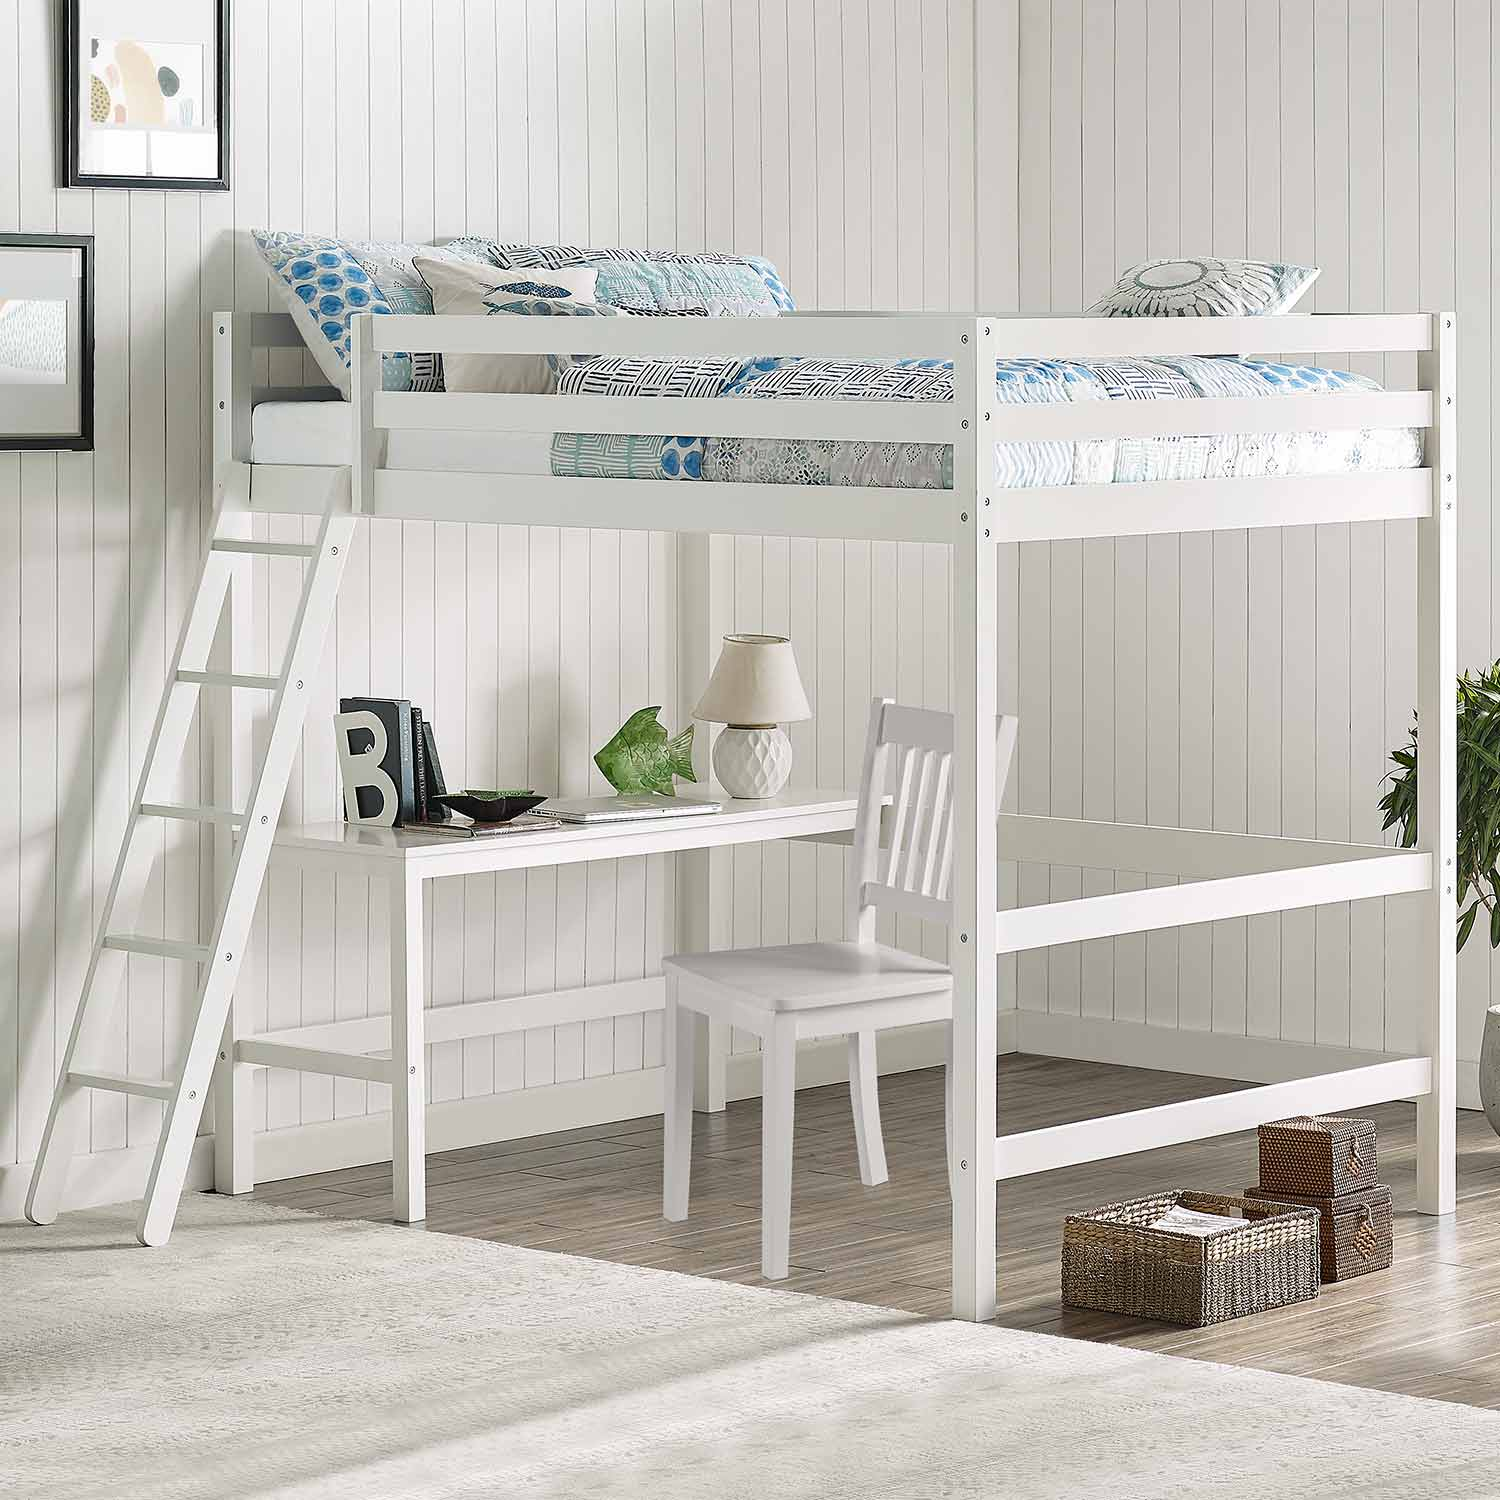 Hillsdale Caspian Full Loft Bed with Chair - White